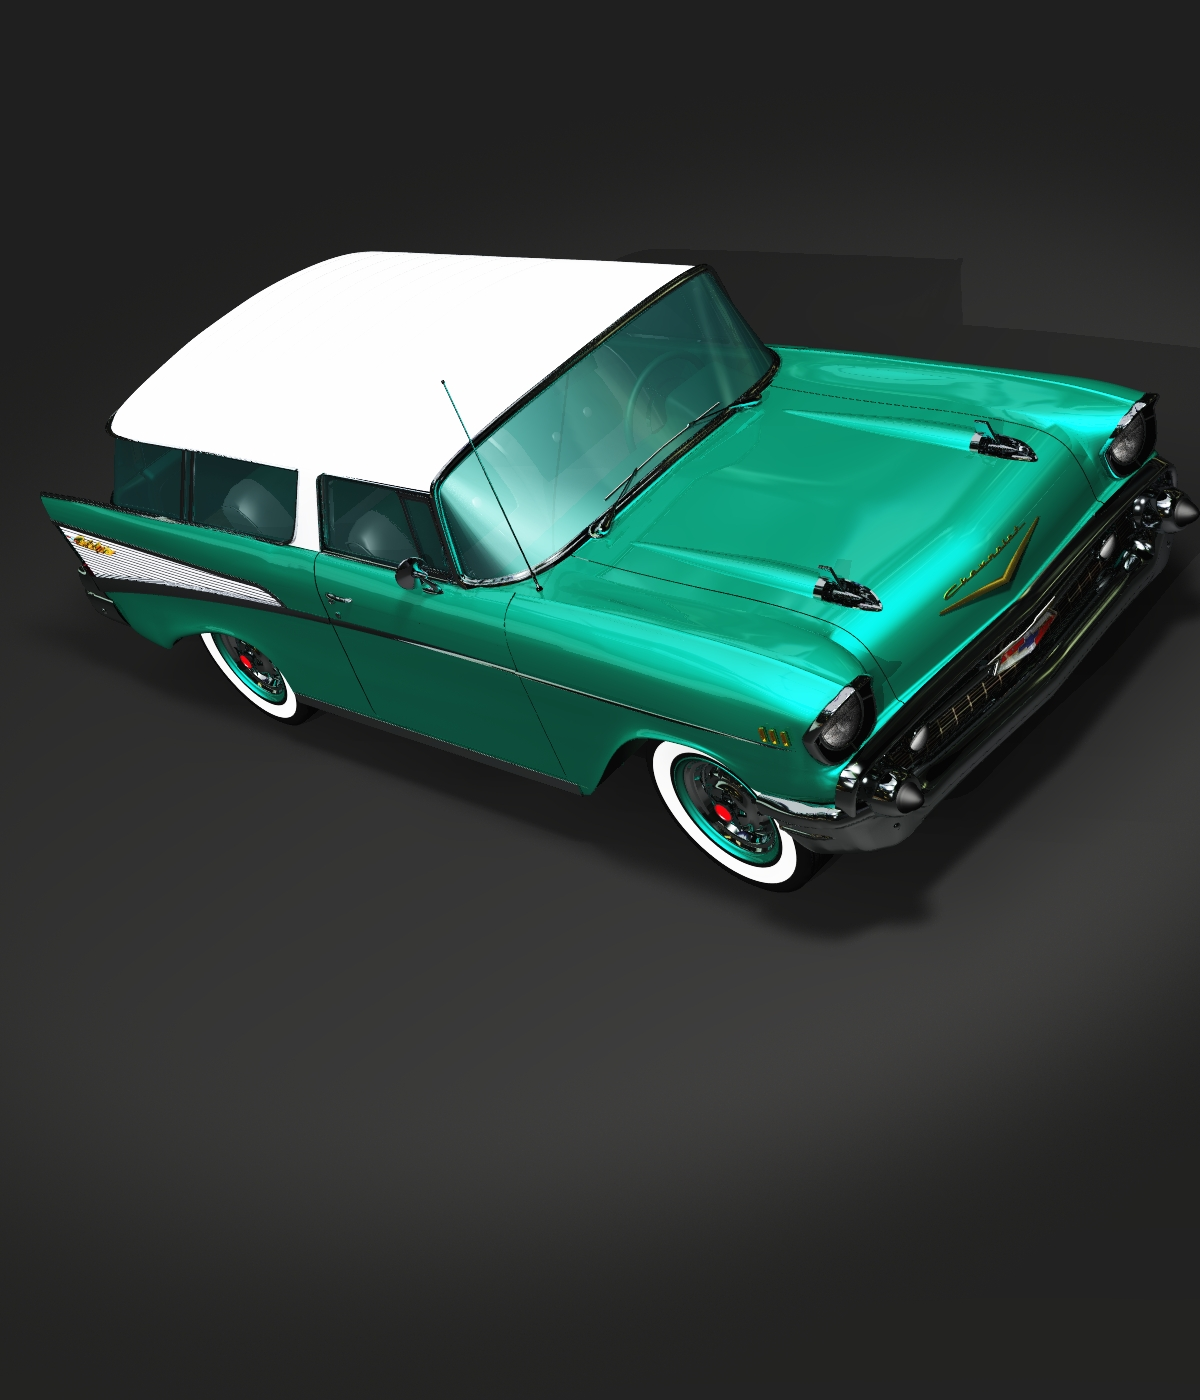 CHEVROLET NOMAD 1957 -OBJ FBX- EXTENDED LICENSE